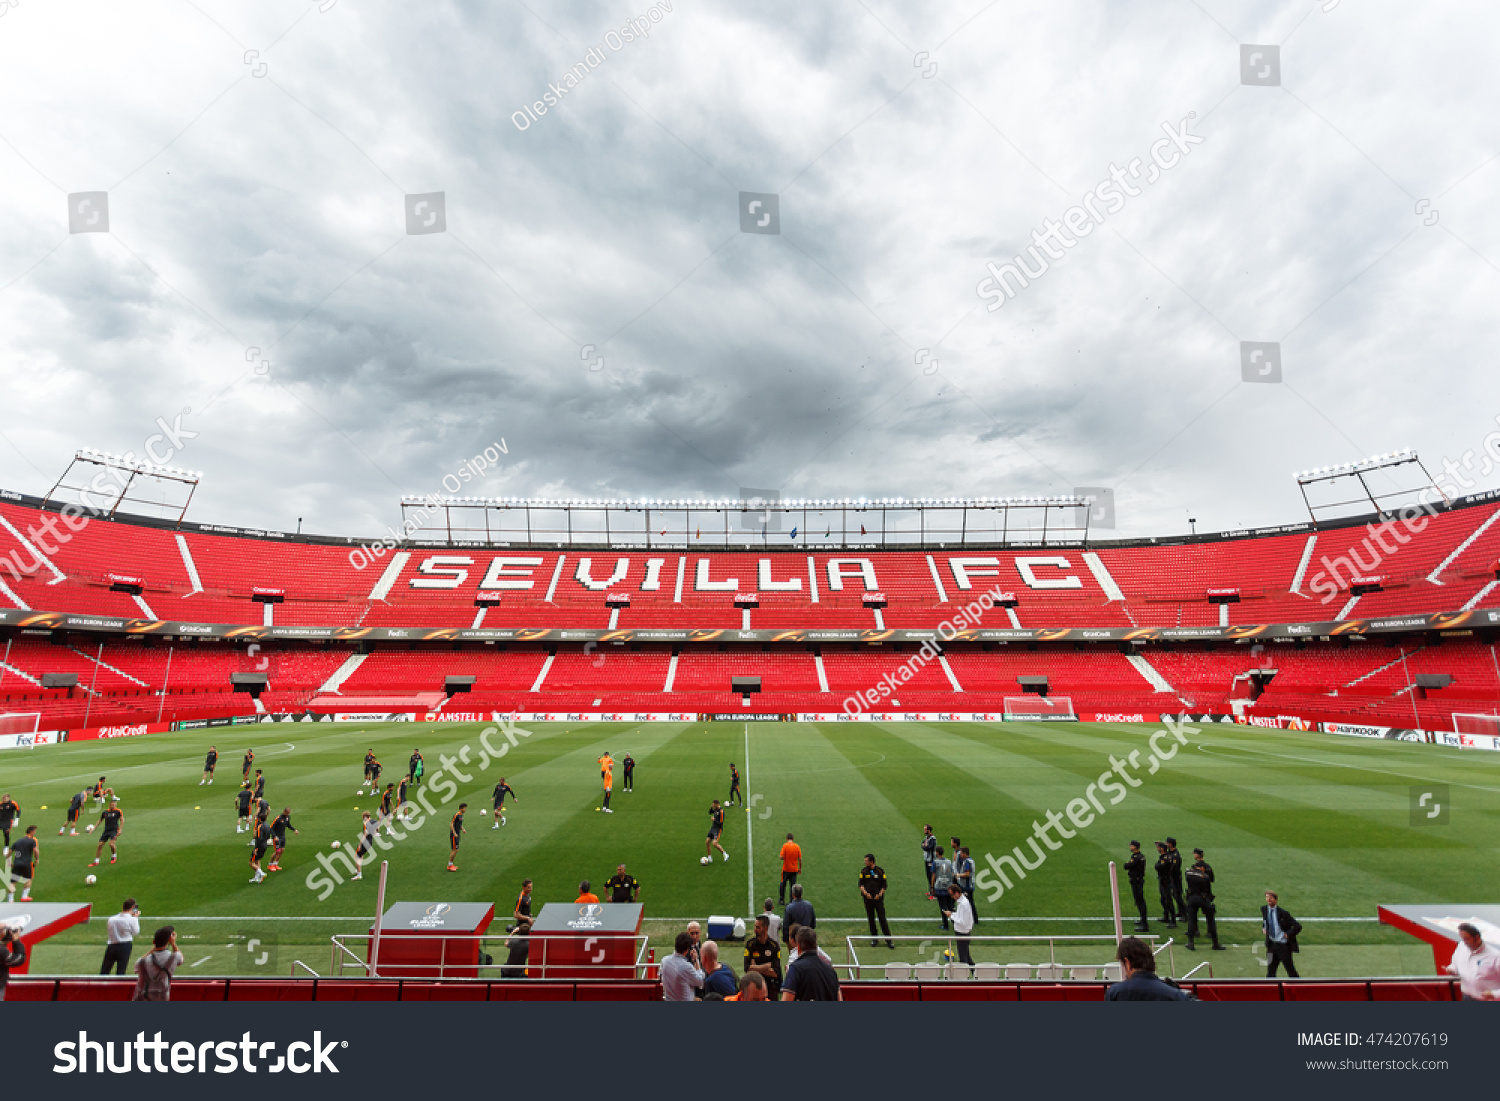 The largest stadium in Seville Ramon Sanchez Pizjuán: history and features of the football arena